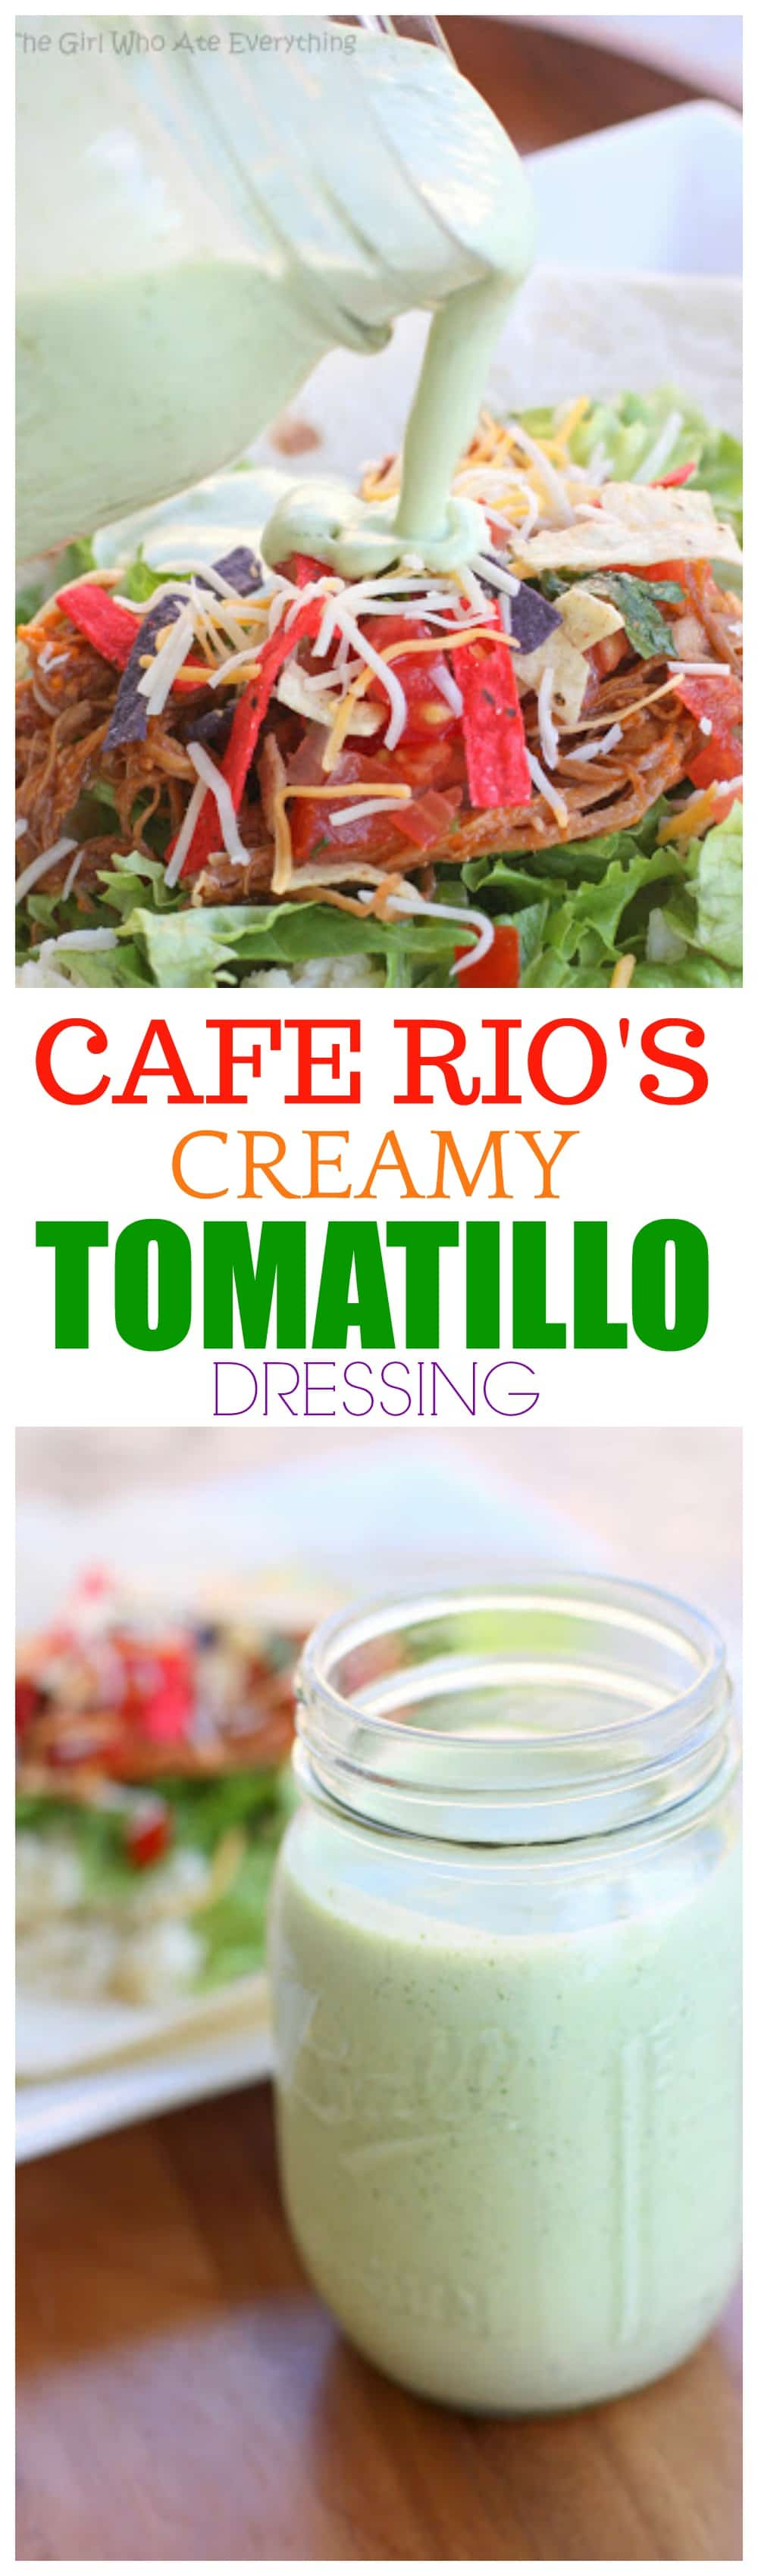 This version of Cafe Rio's Creamy Tomatillo Dressing is as close as it gets. I've made this 100 times and would drink it if I could but I usually pour it over salad, tacos, and burritos. #mexican #cafe #rio #creamy #tomatillo #dressing #recipe #salad